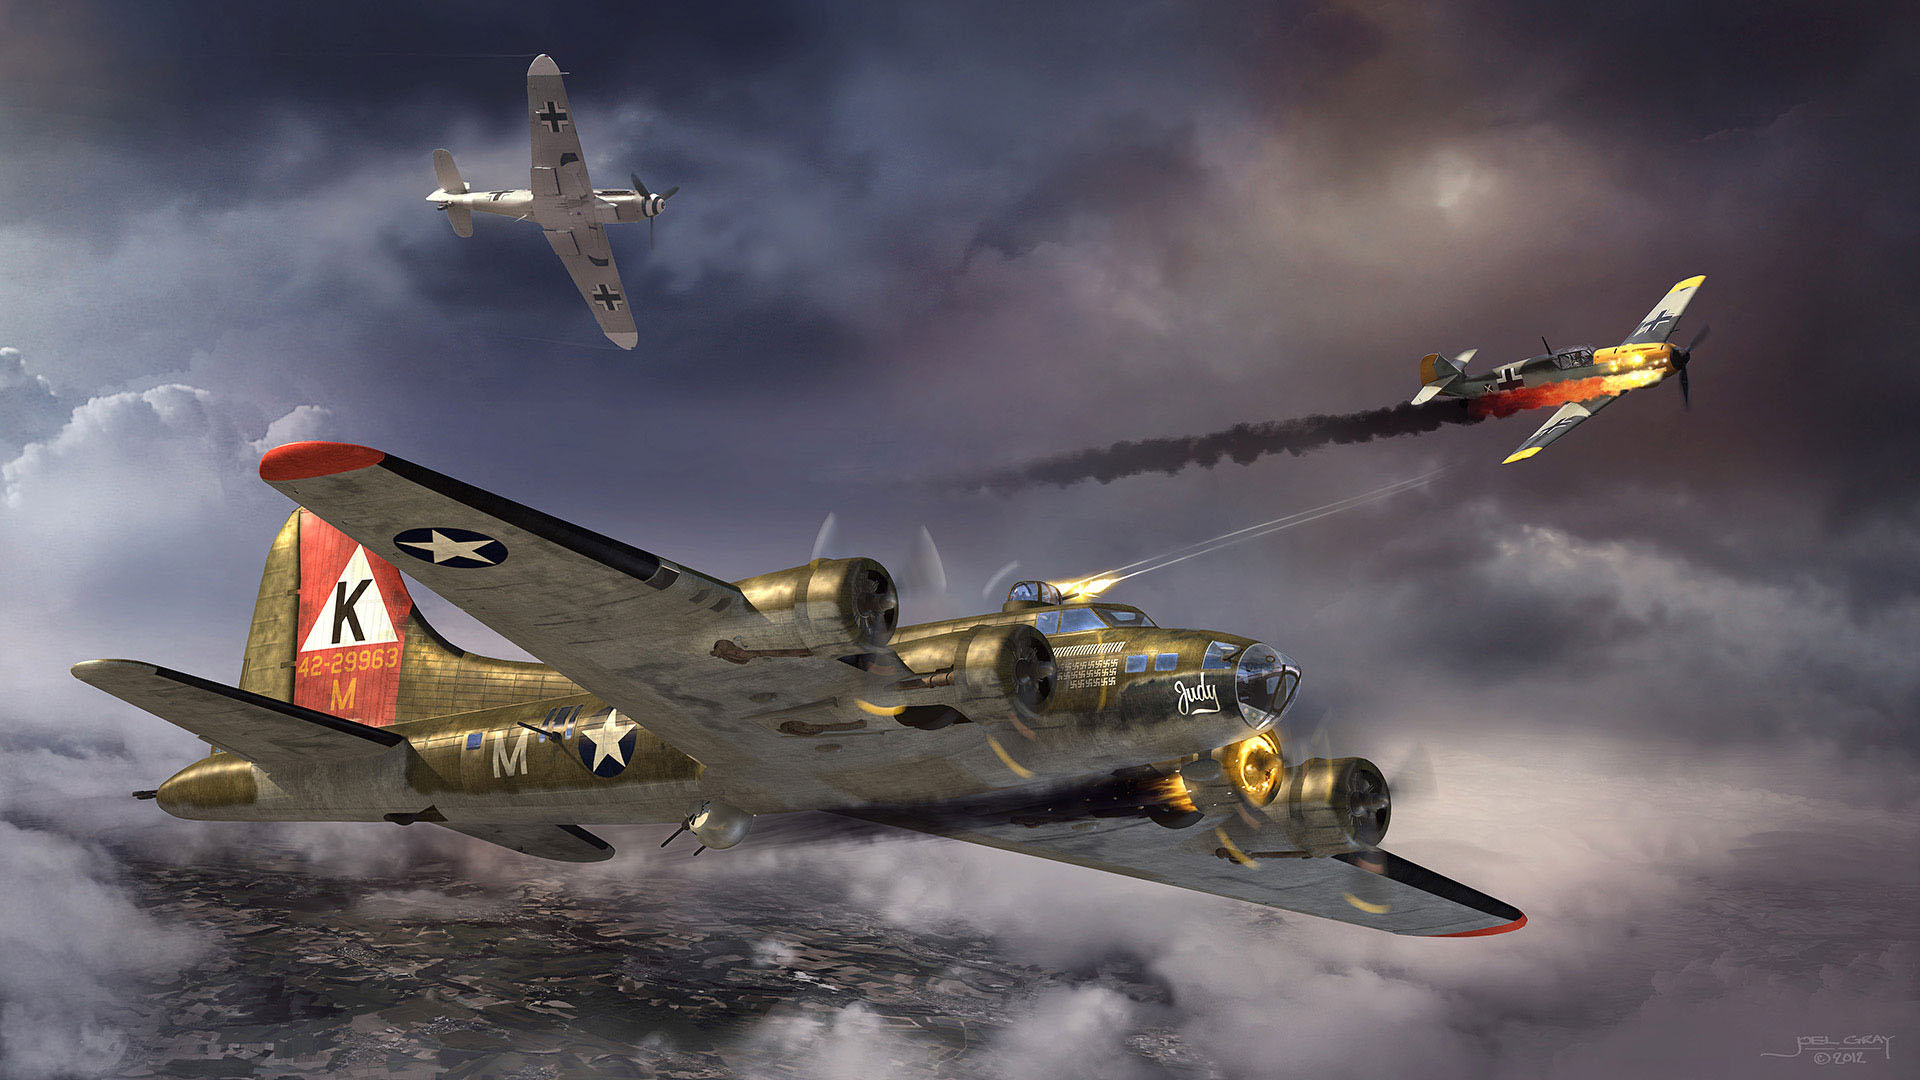 "Project: B-17 Bomber ""Judy"" (personal artwork) Contribution: Concept, art direction, lighting, texturing, rendering, matte painting"